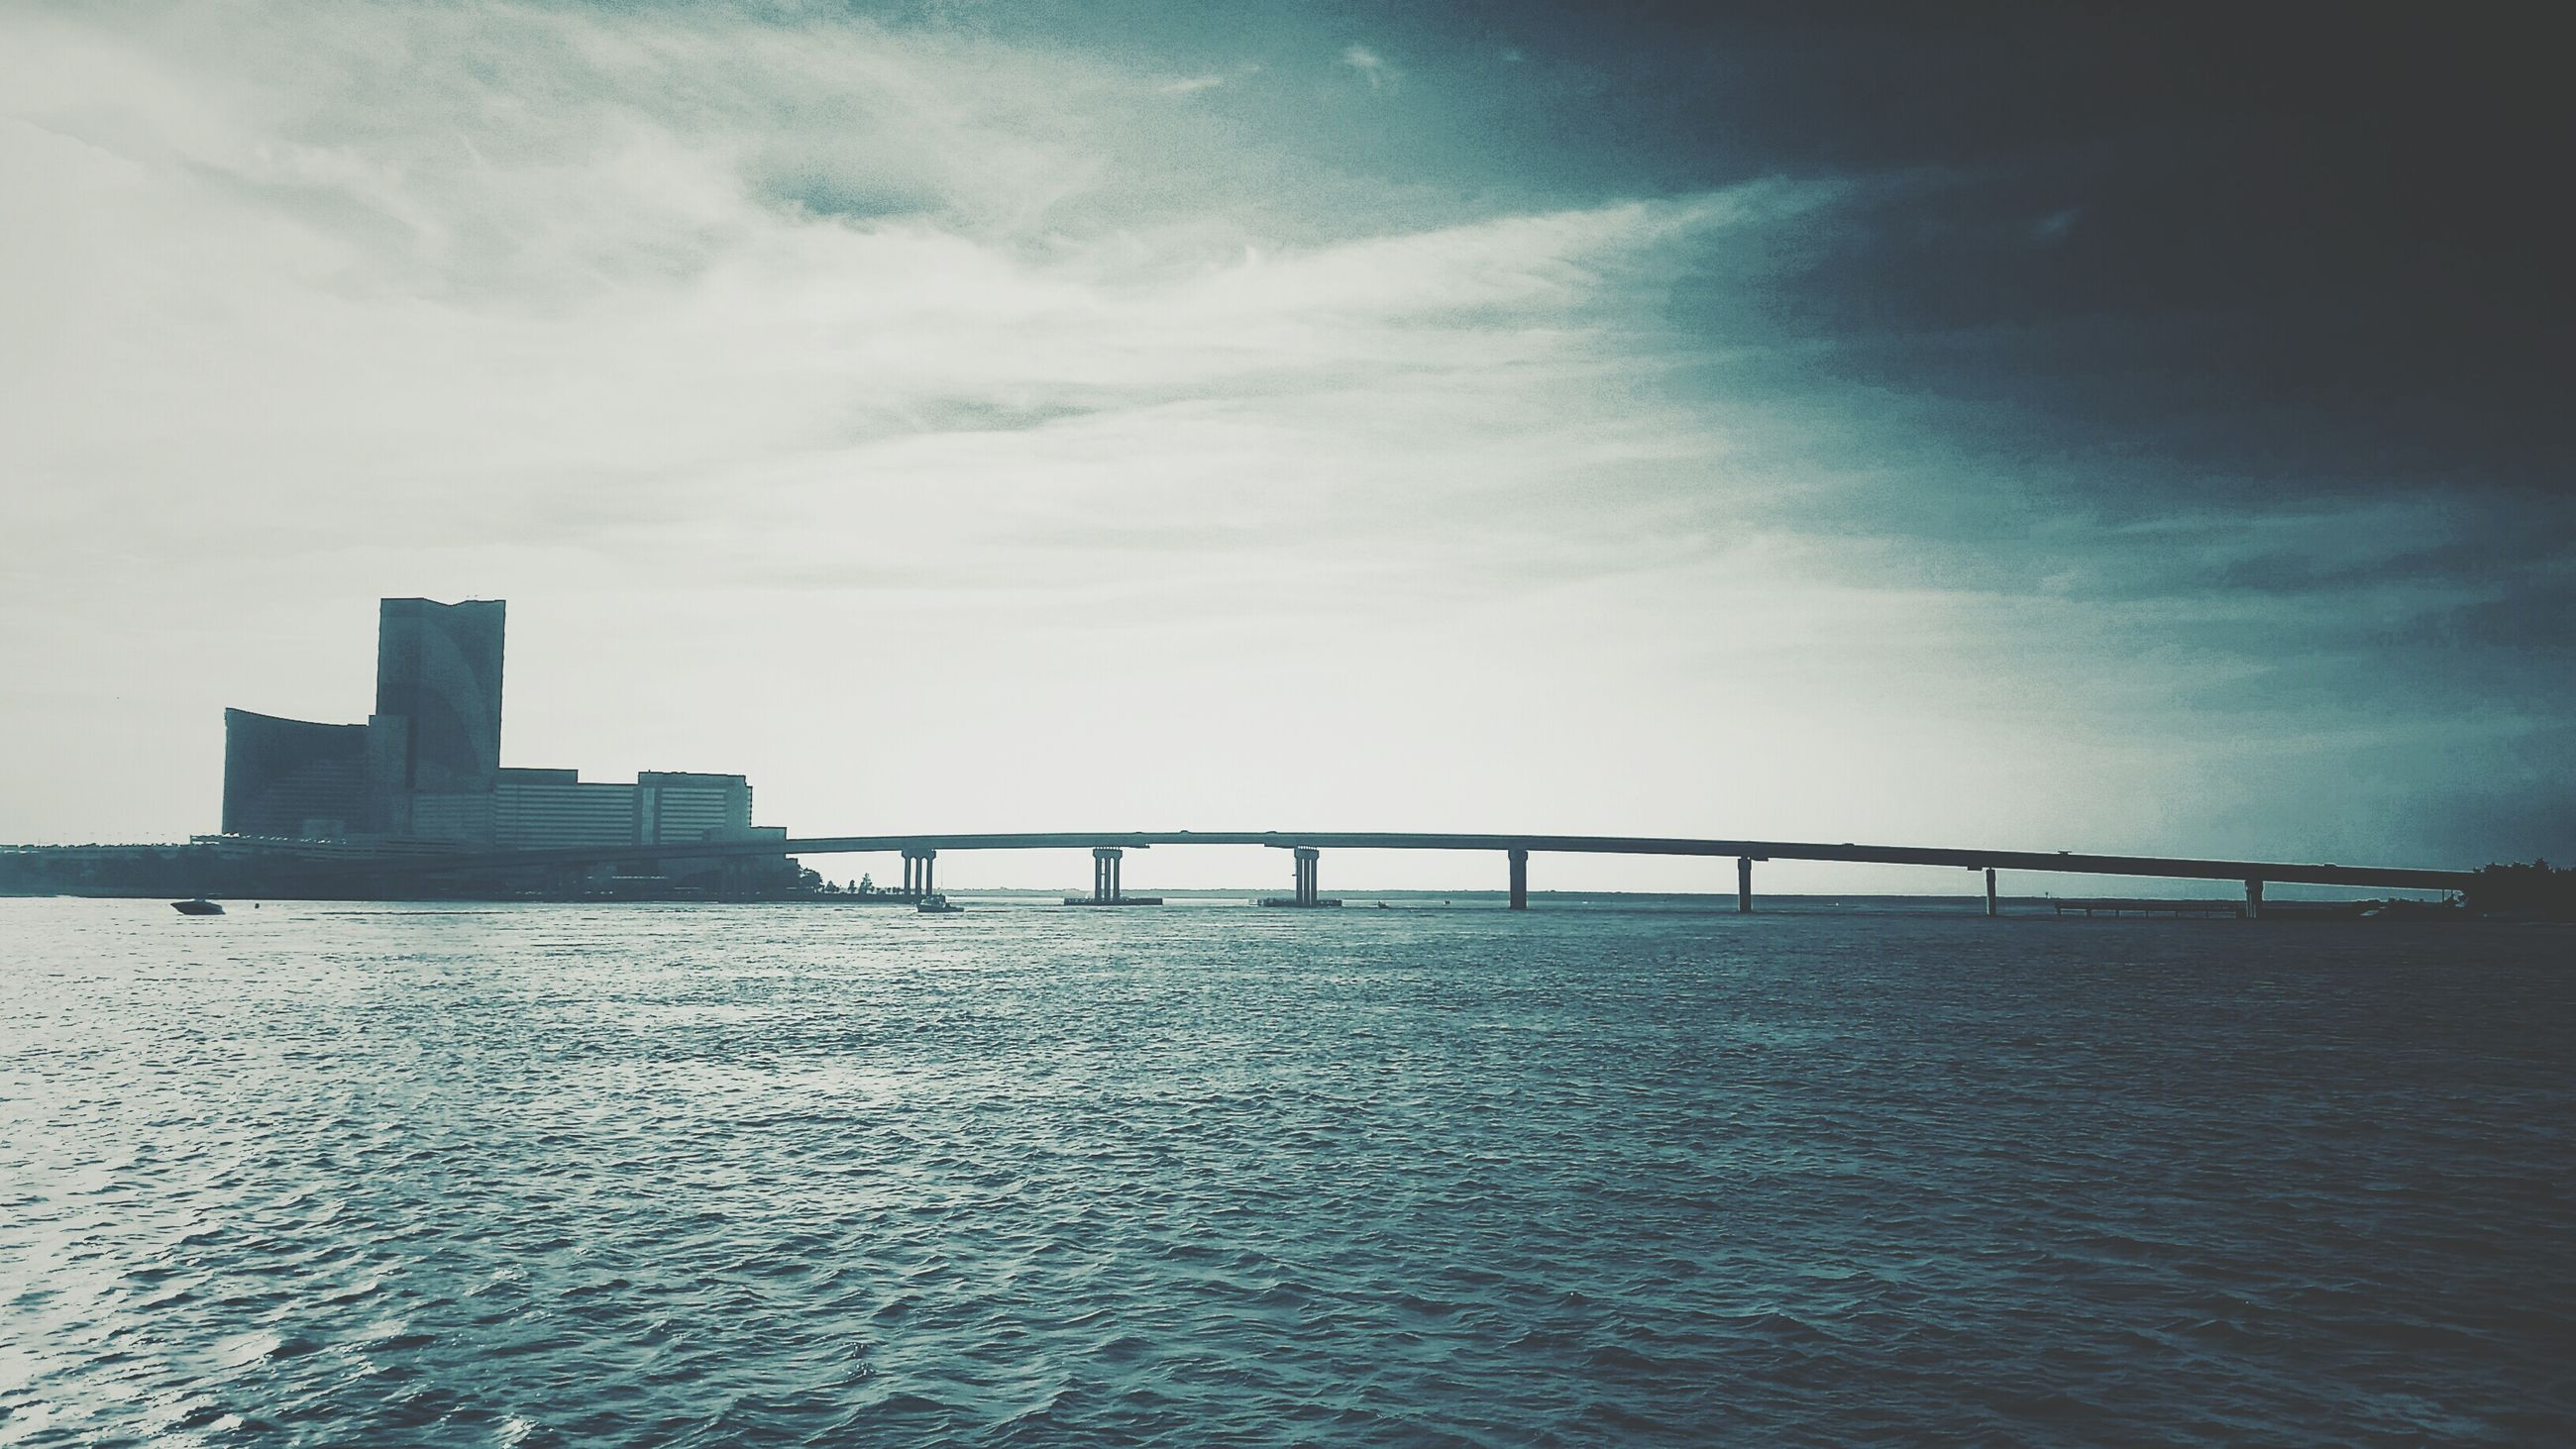 architecture, built structure, water, sky, waterfront, sea, connection, bridge - man made structure, building exterior, cloud - sky, river, rippled, bridge, cloud, nature, outdoors, city, tranquility, day, no people